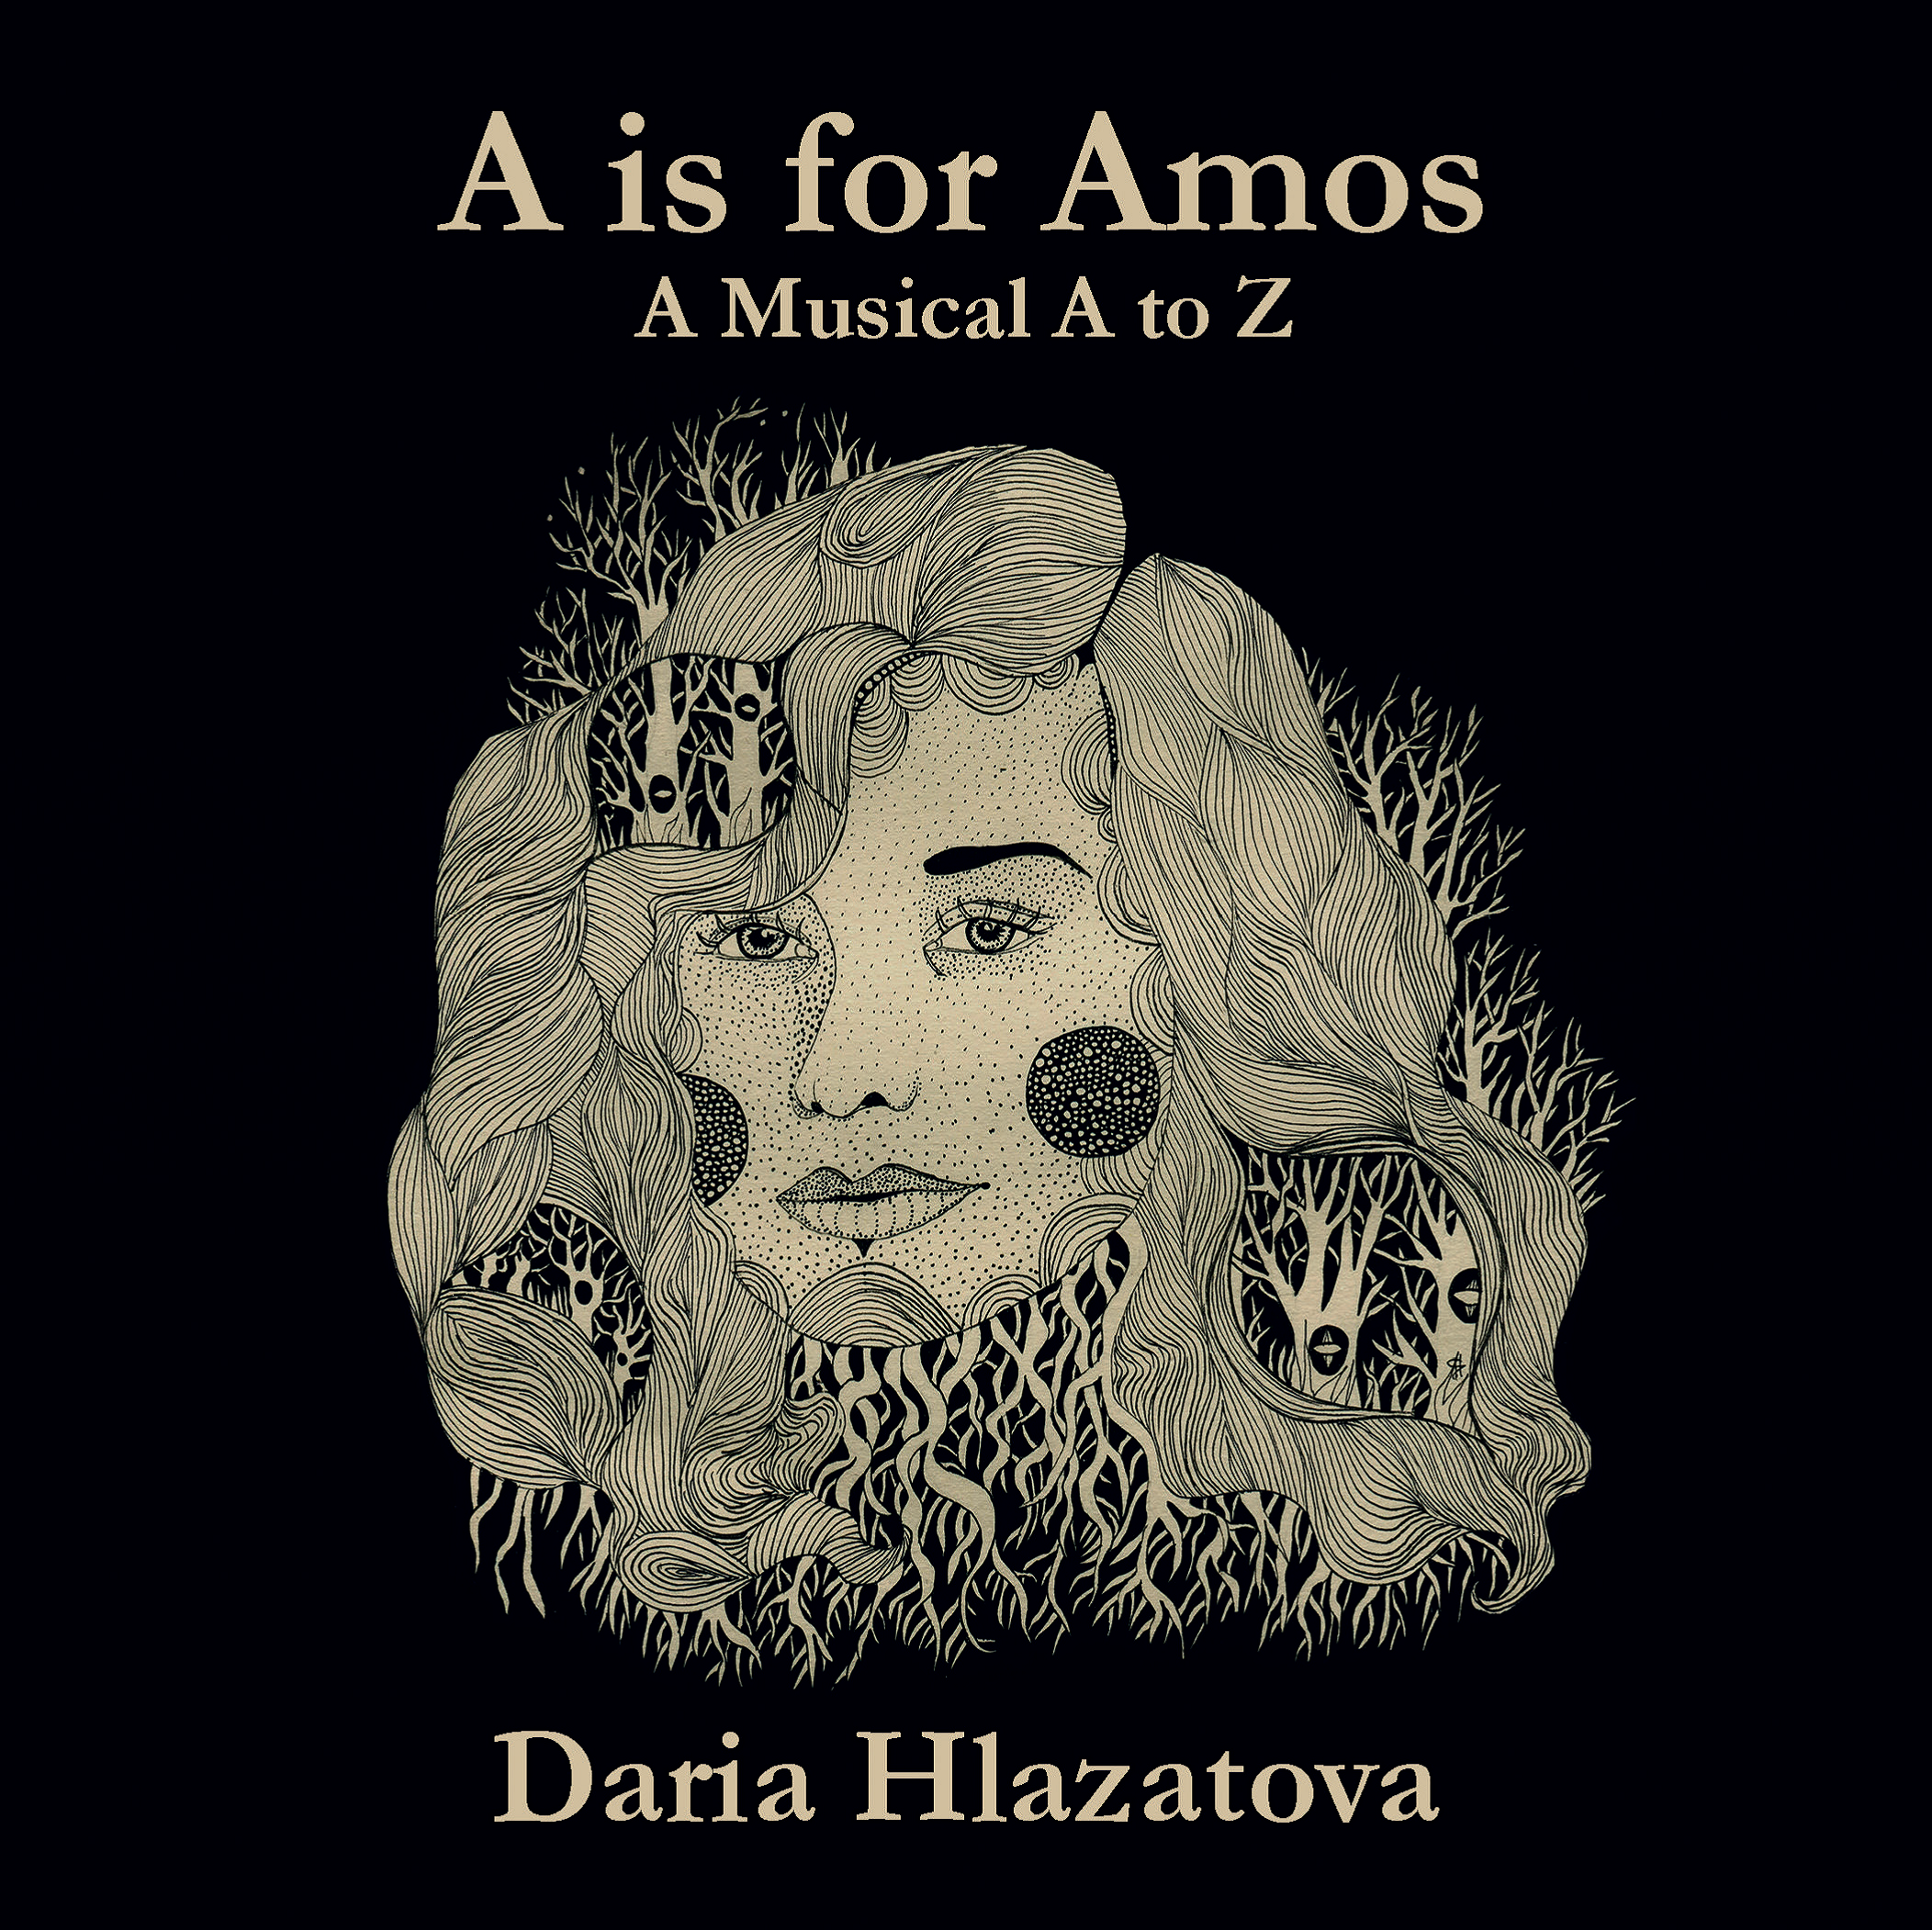 'A is for Amos' by Daria Hlazatova